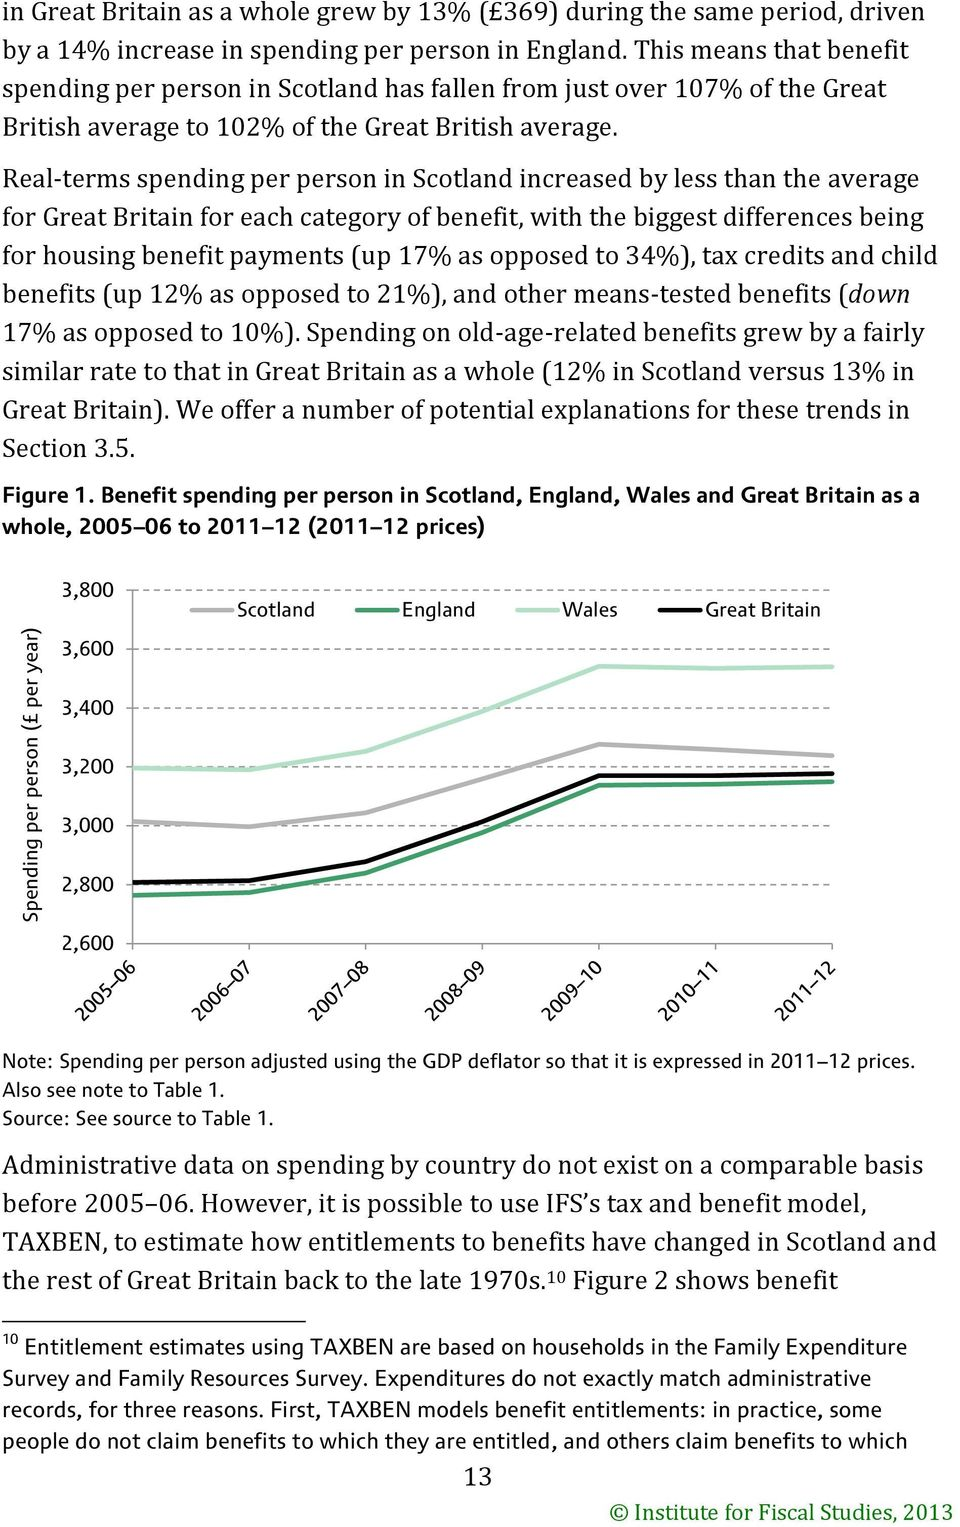 Real-terms spending per person in Scotland increased by less than the average for Great Britain for each category of benefit, with the biggest differences being for housing benefit payments (up 17%